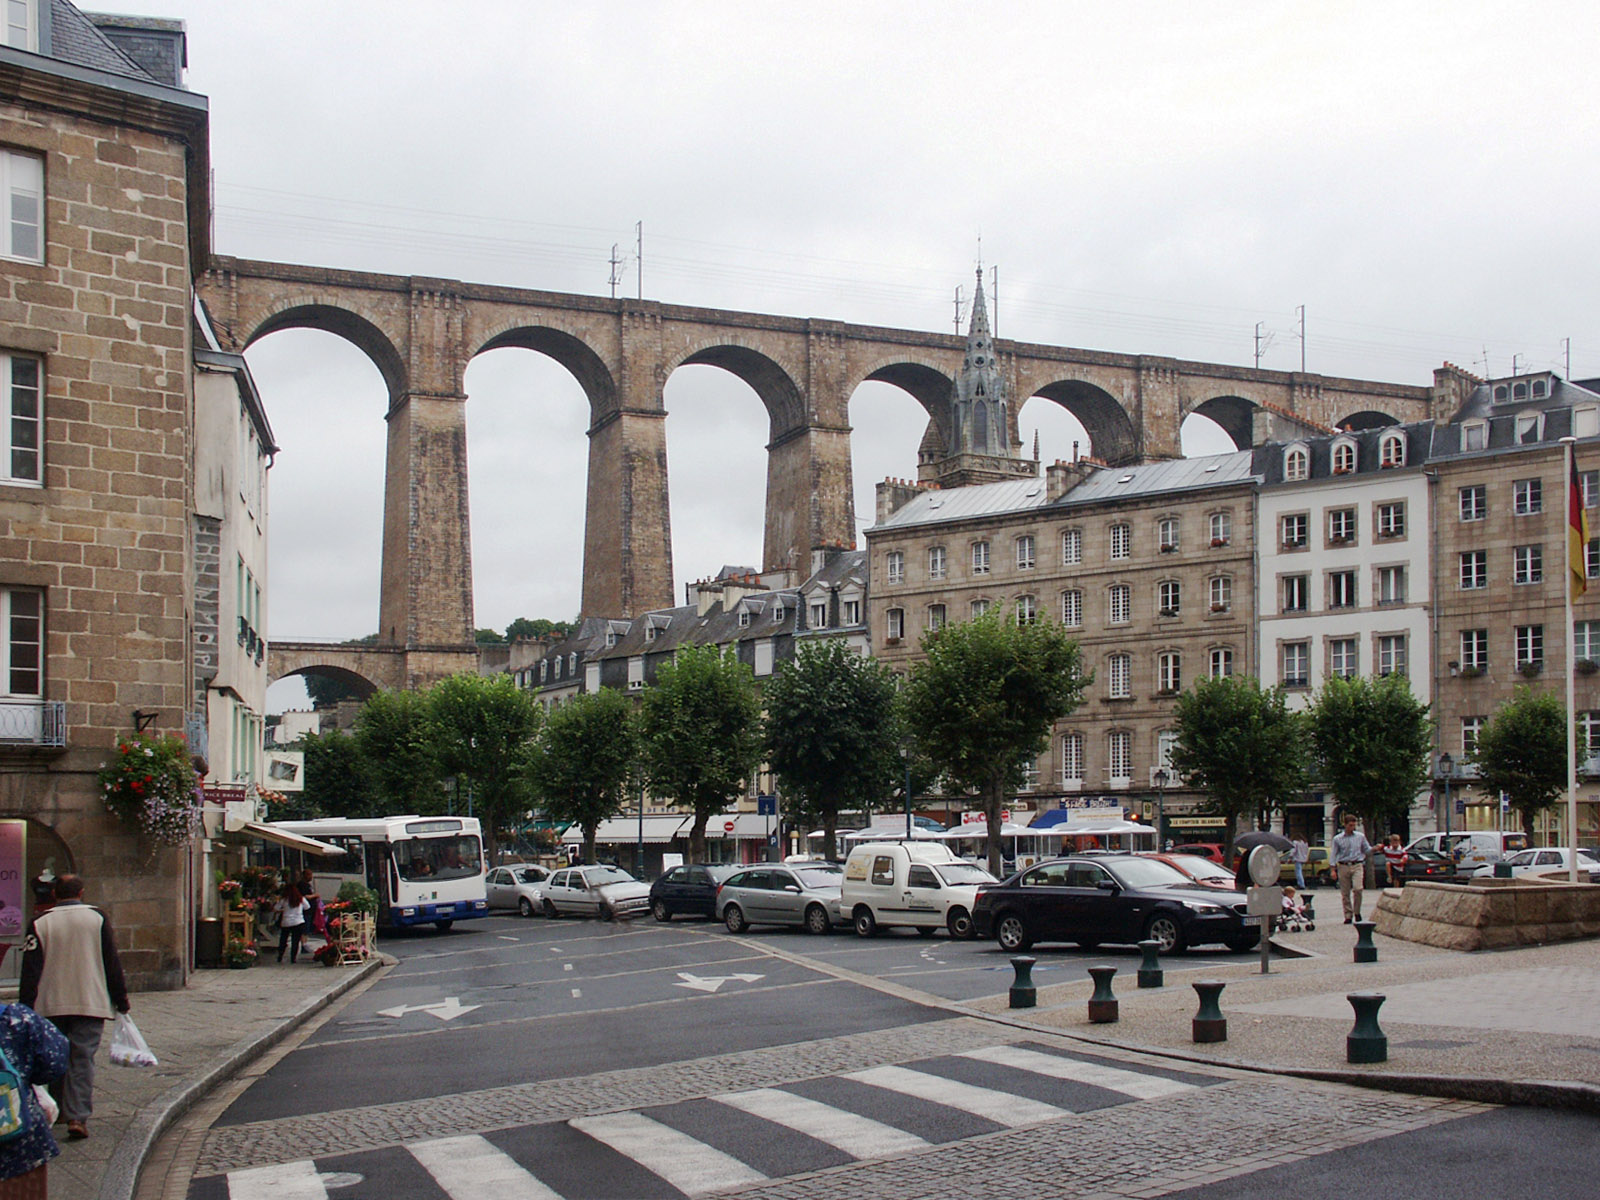 Morlaix (Brittany, France); Place des Otages, Viaduc. This photo was taken by fafner, see http://en.wikipedia.org/wiki/File:Morlaix_Viaduc.jpg